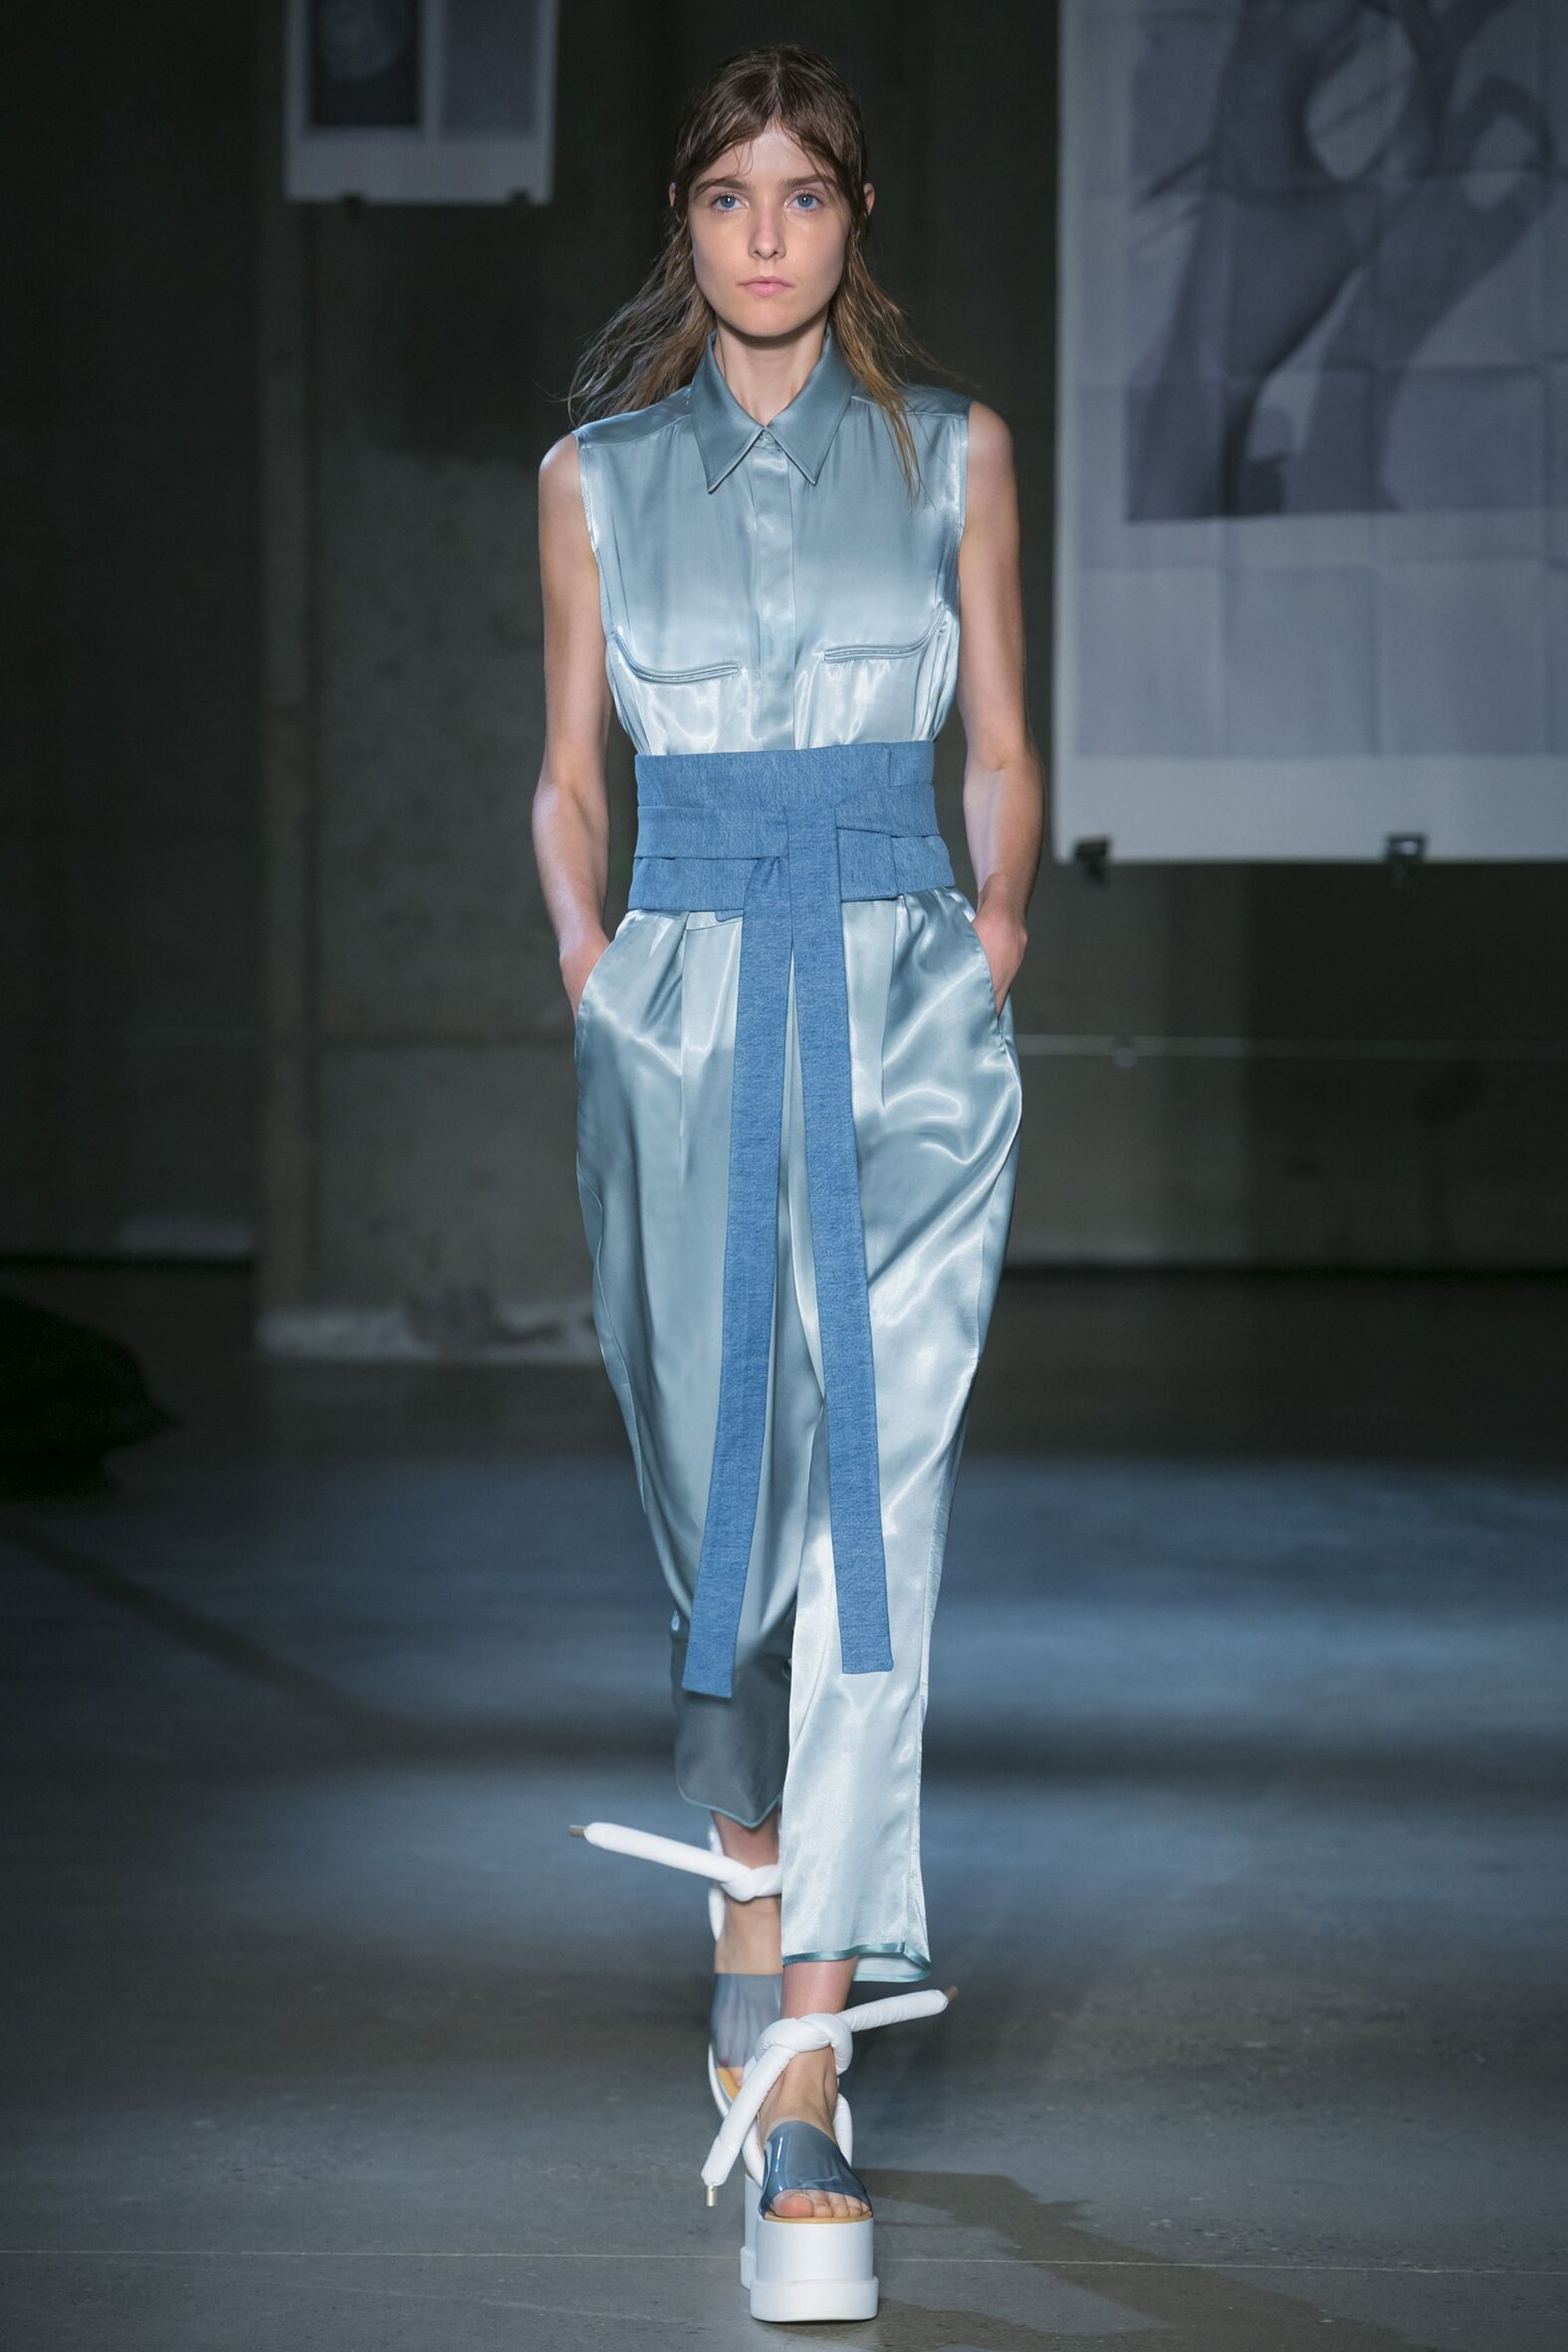 Spring MM6 Maison Martin Margiela Trends 2015 Woman